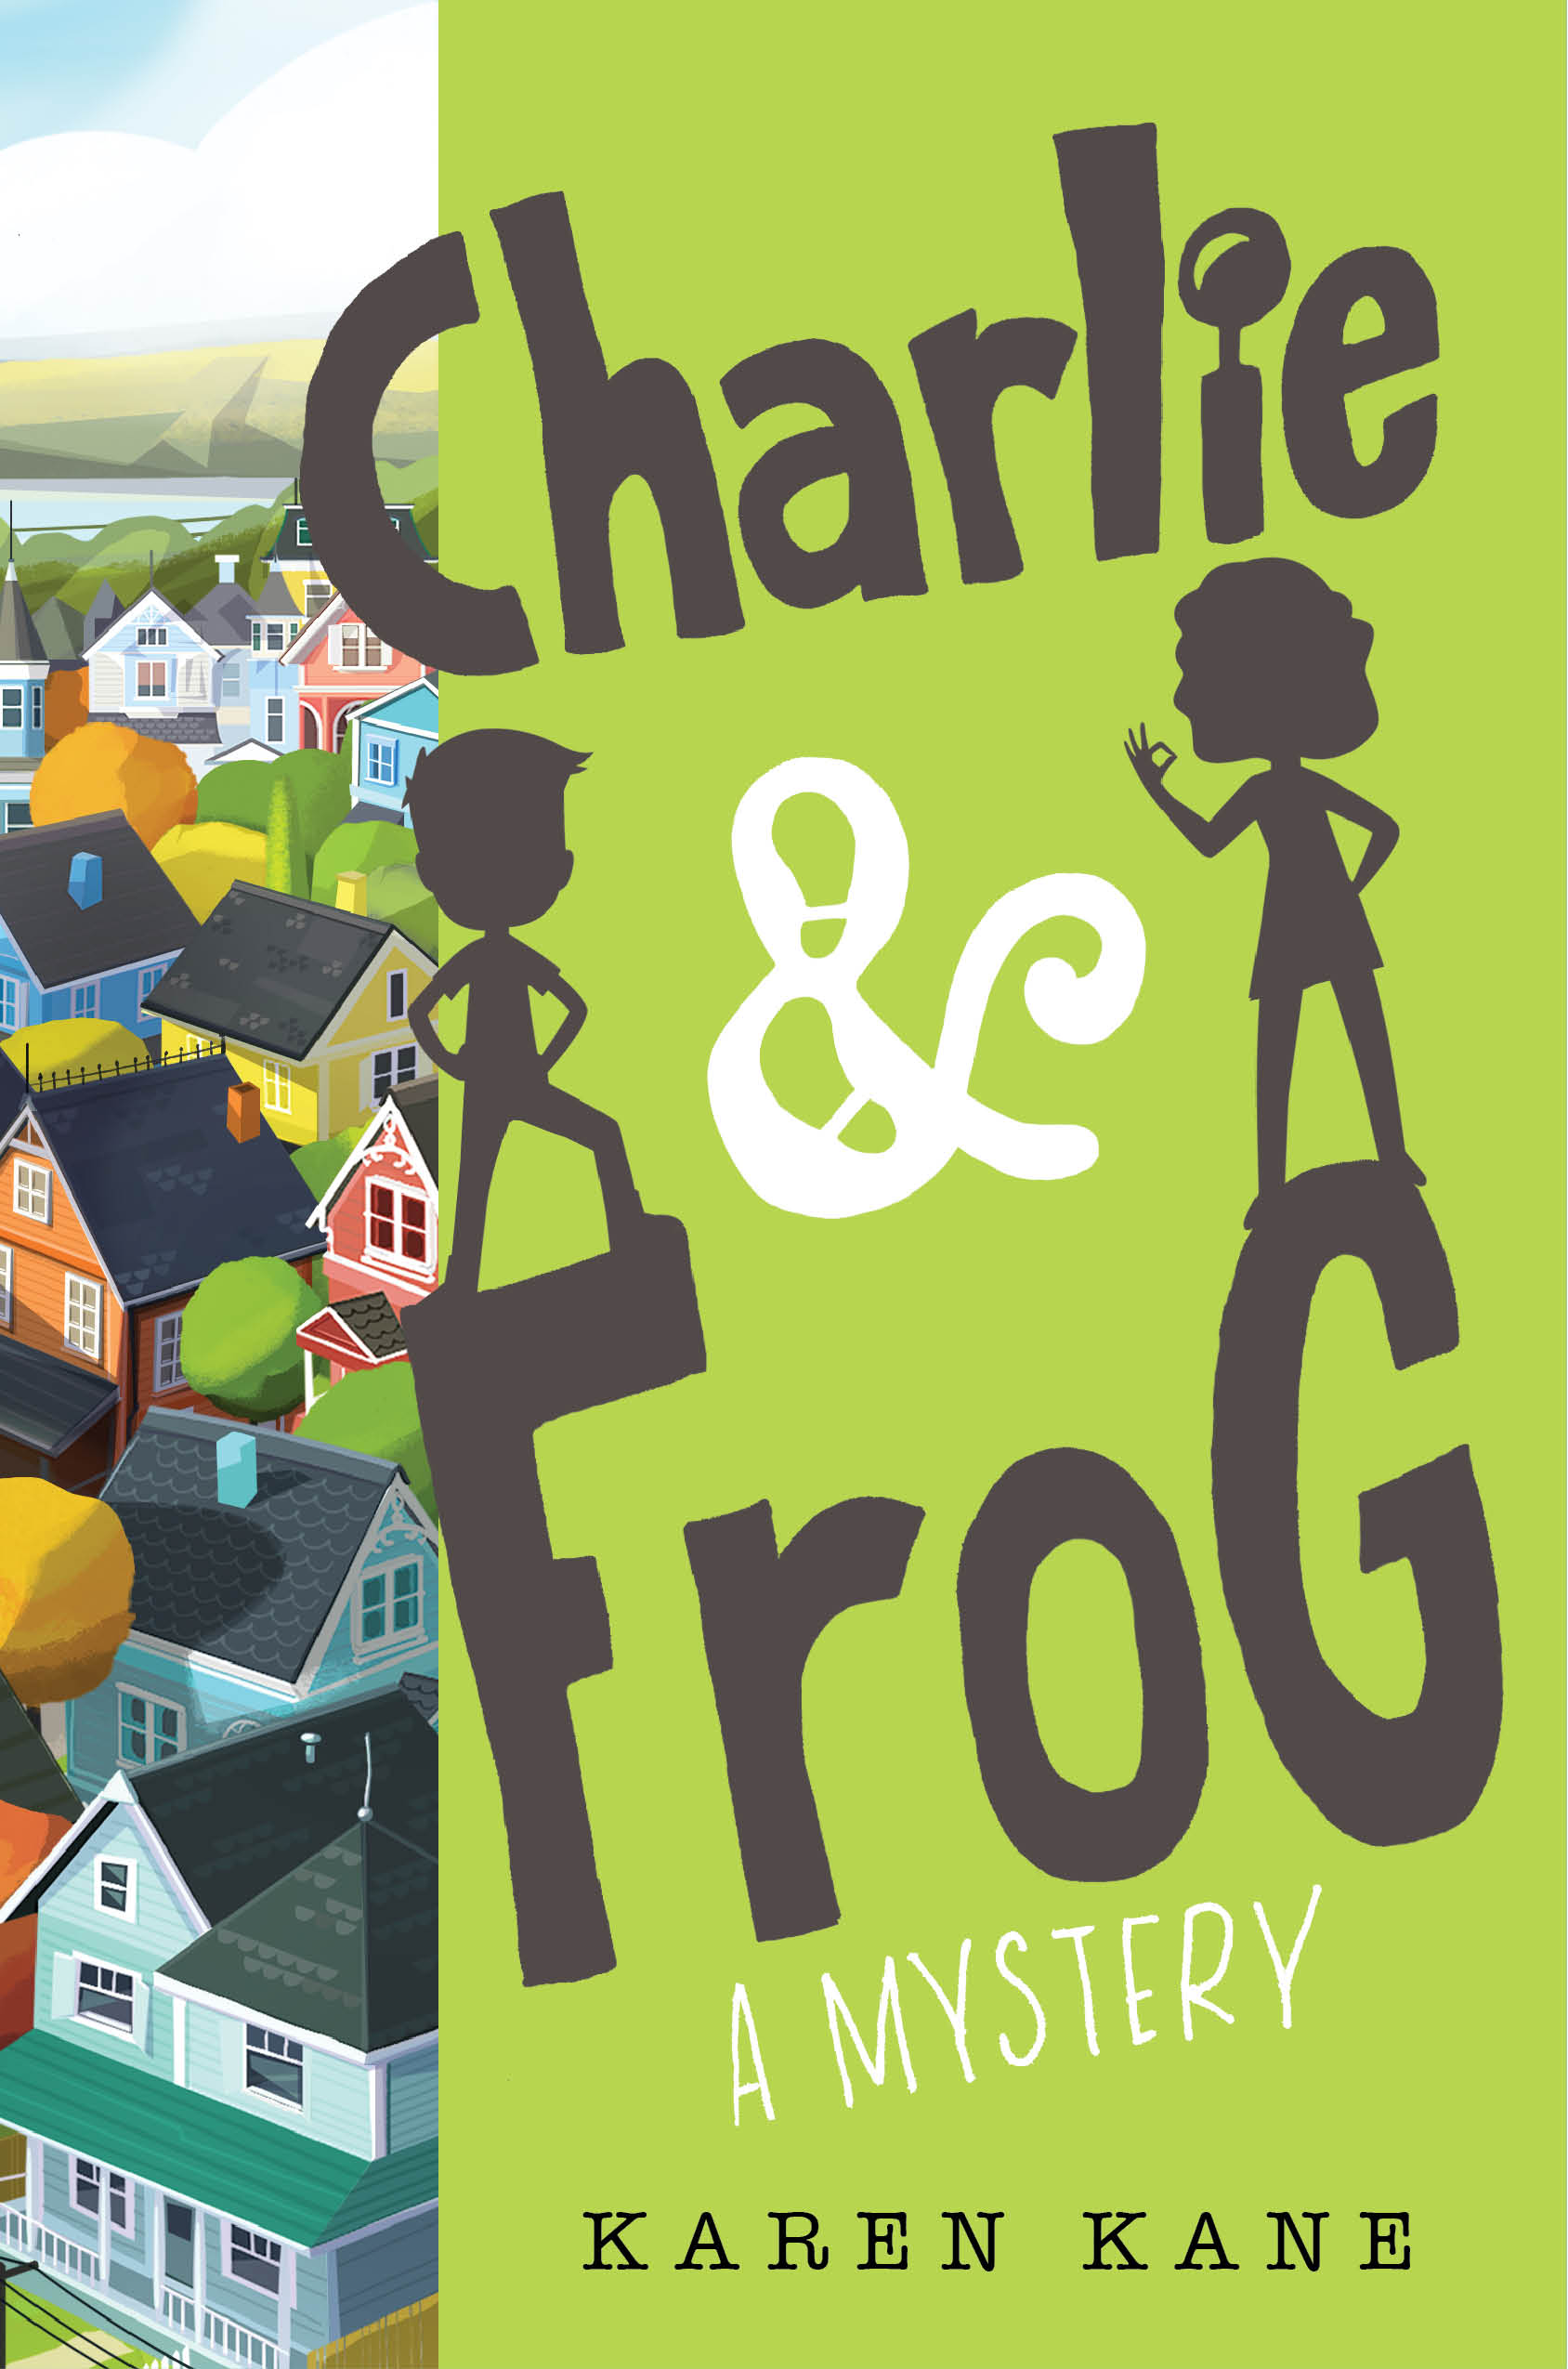 Charlie and Frog by debut author Karen Kane